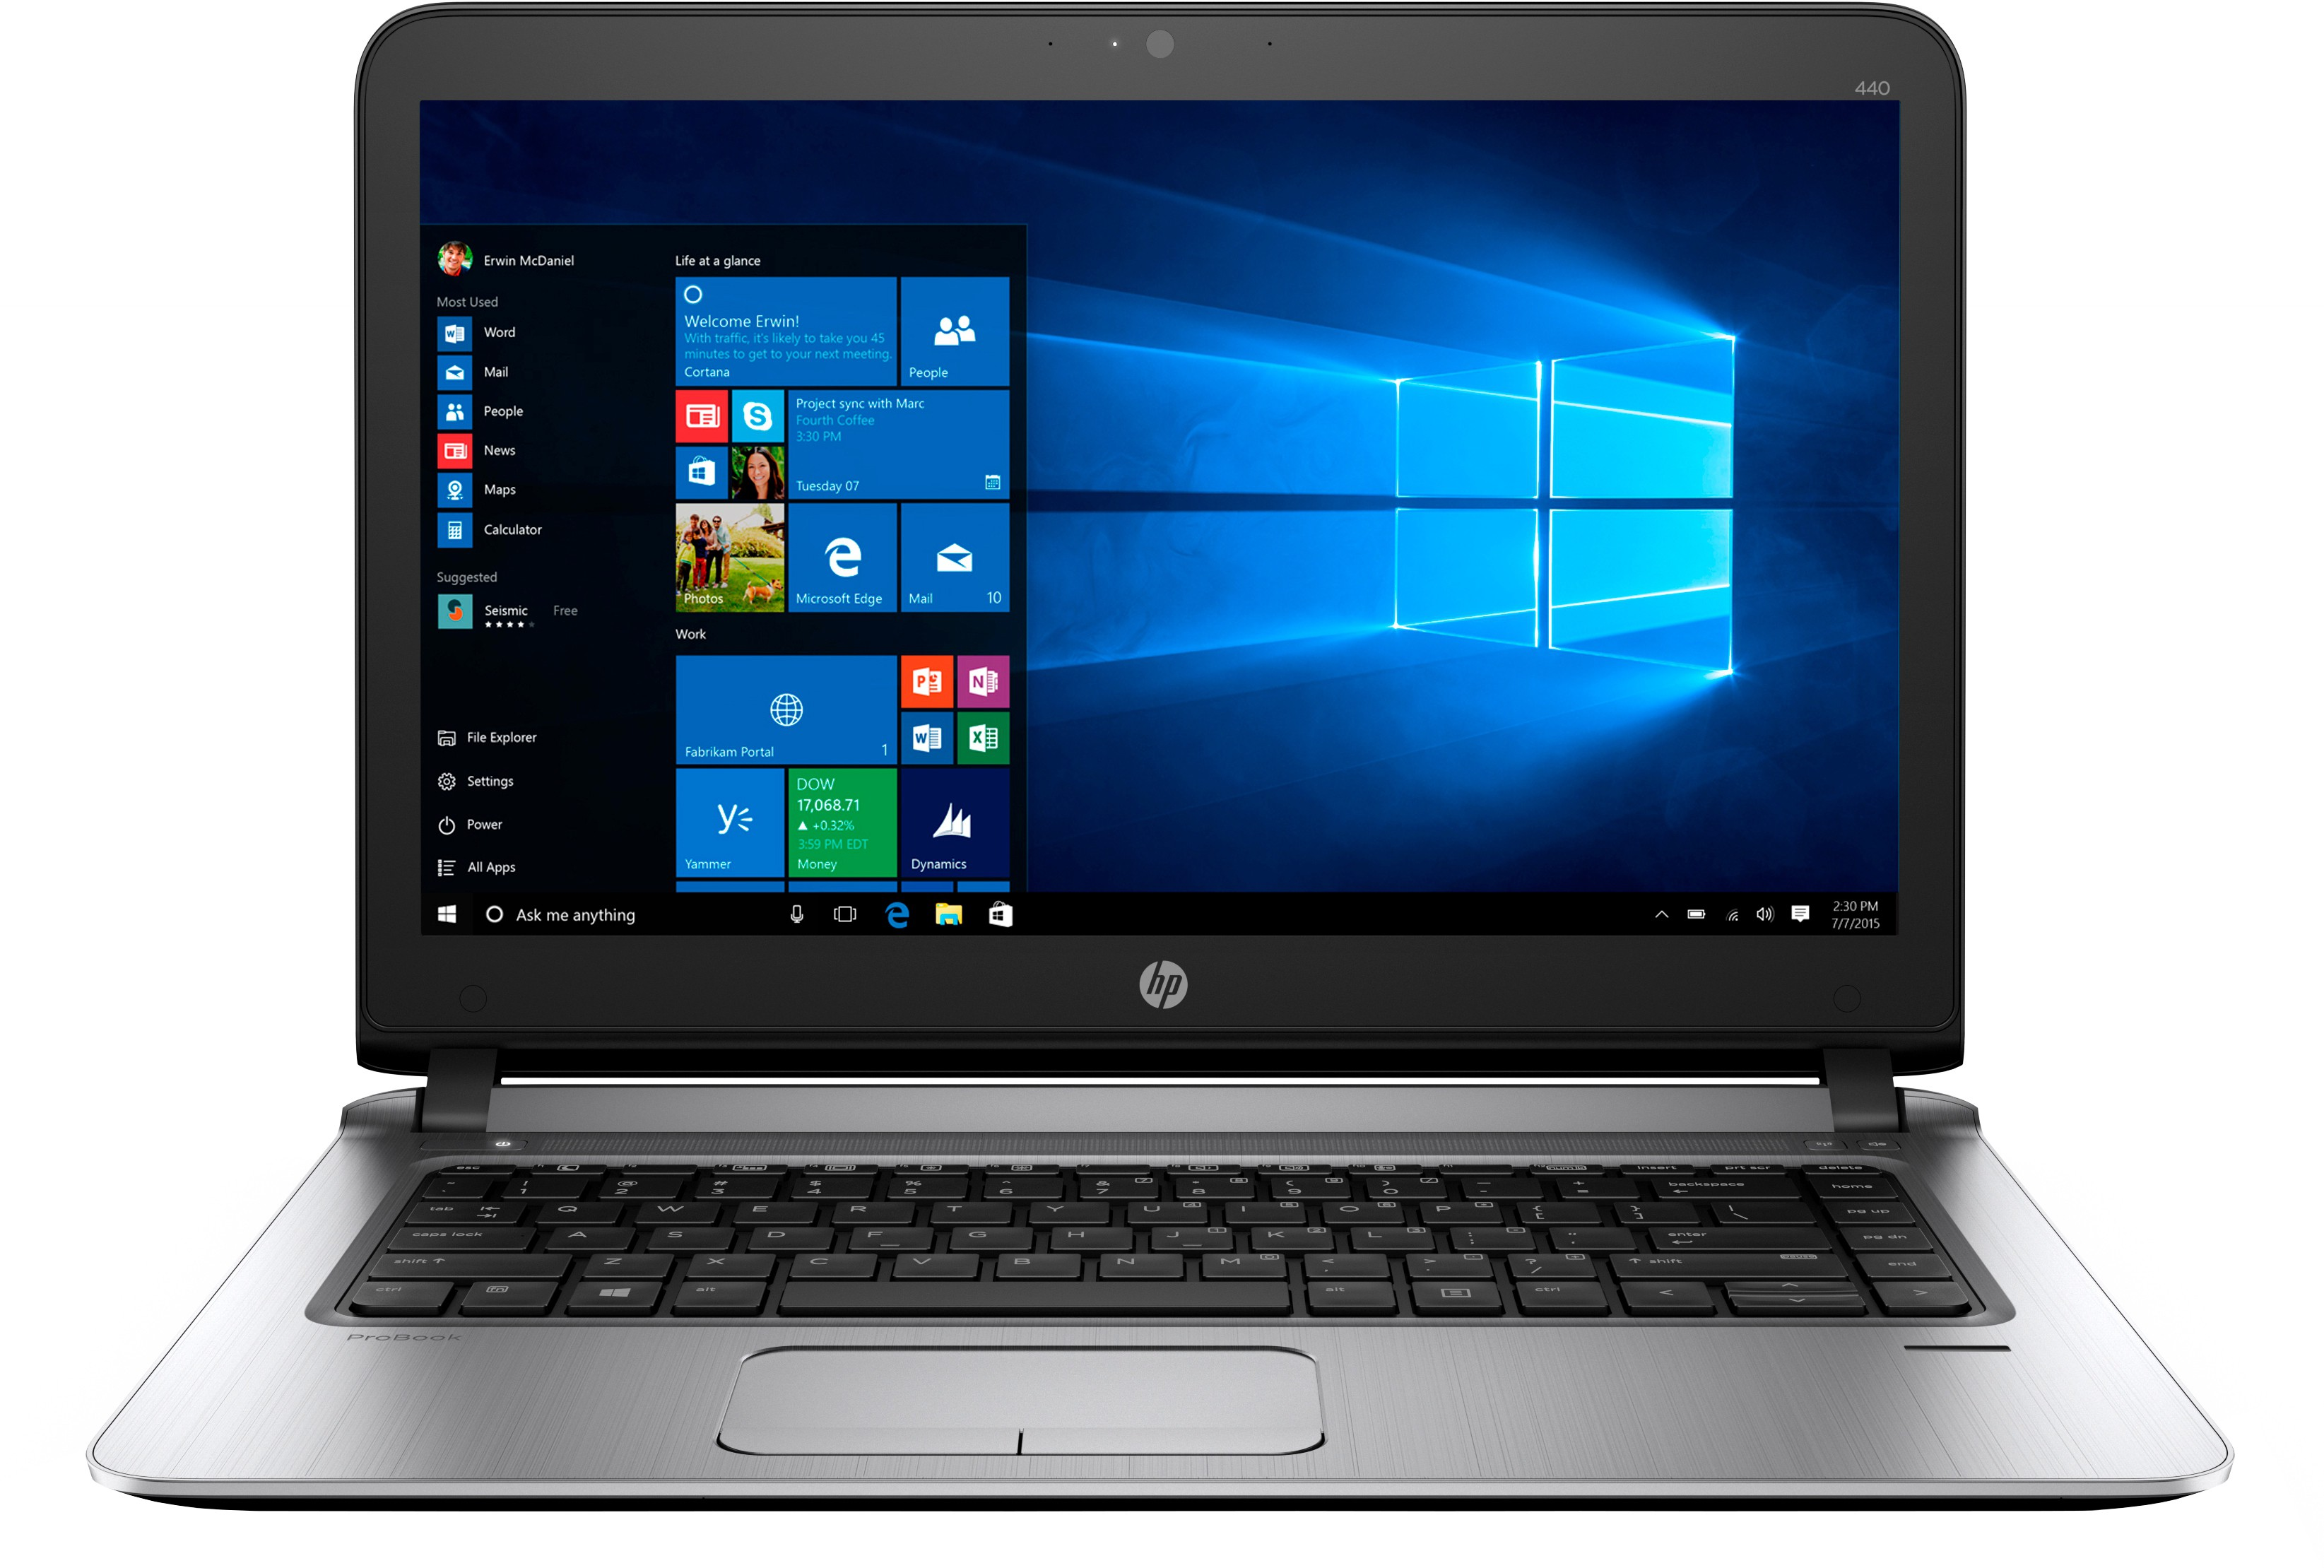 Deals - Hyderabad - Business Laptops <br> HP Probook, Dell Vostro, Lenovo Thinkpad<br> Category - computers<br> Business - Flipkart.com